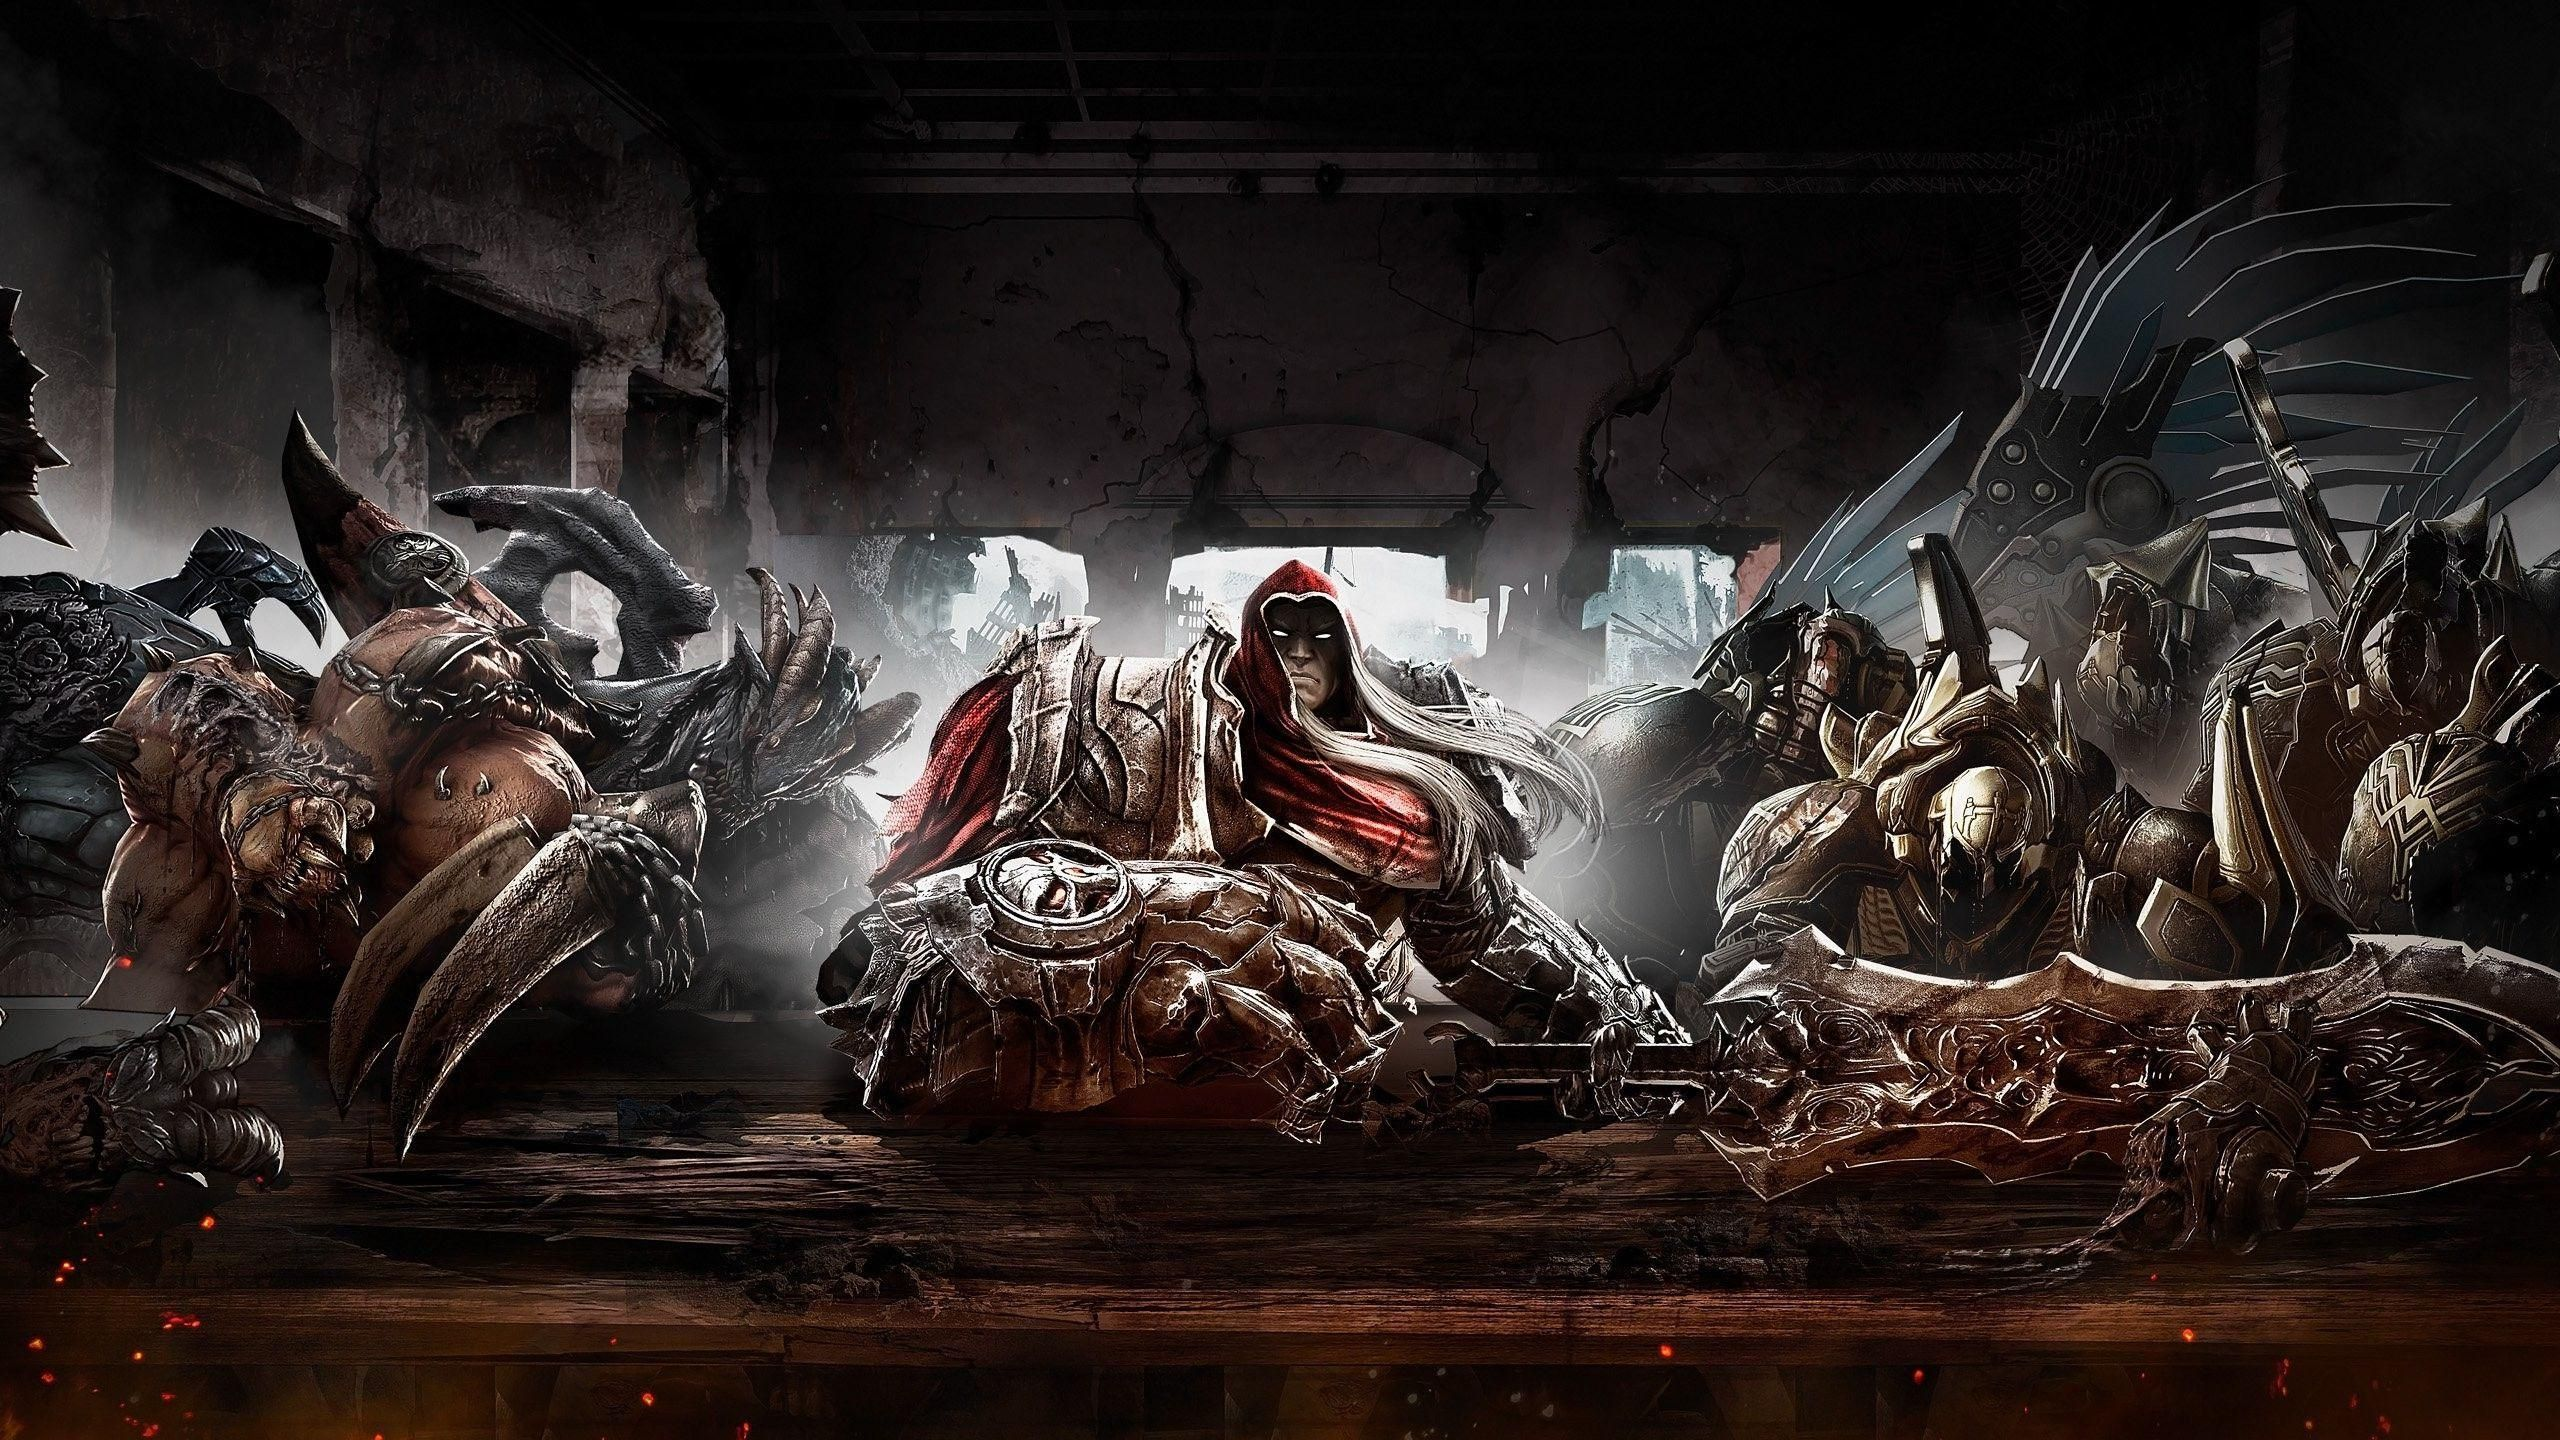 2560x1440 Wallpaper Gaming Group 59 Hd Wallpapers In